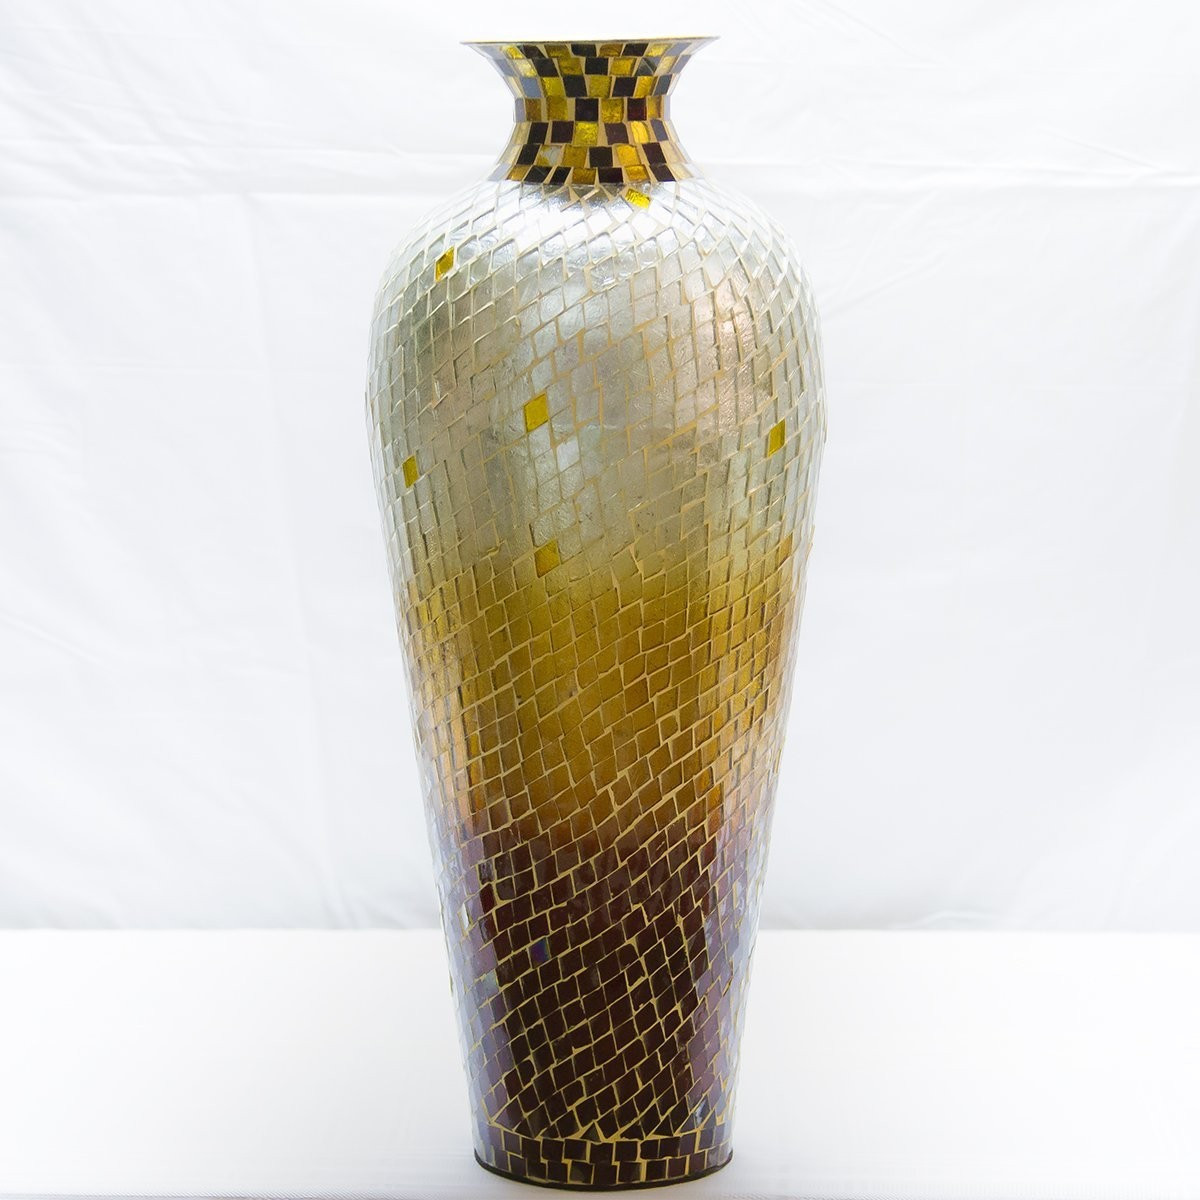 36 inch glass floor vase of tall mirrored floor vase mirror ideas pertaining to in decors 20 amphora nouveau vase metal floor with decorative glass mosaic overlay